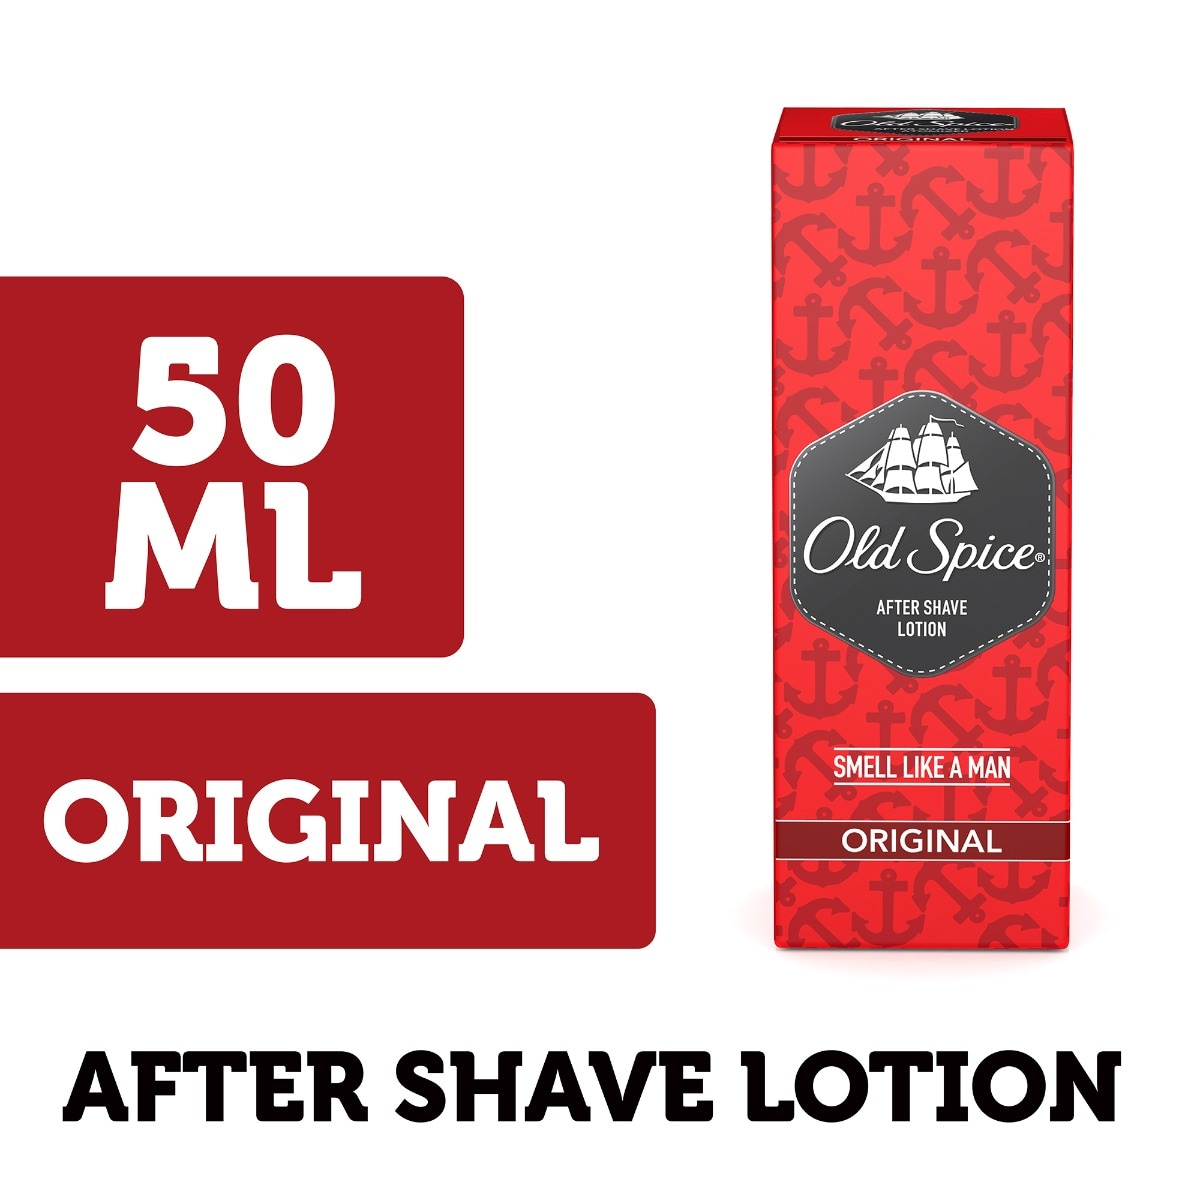 Old Spice Original After Shave Lotion, 50 ml